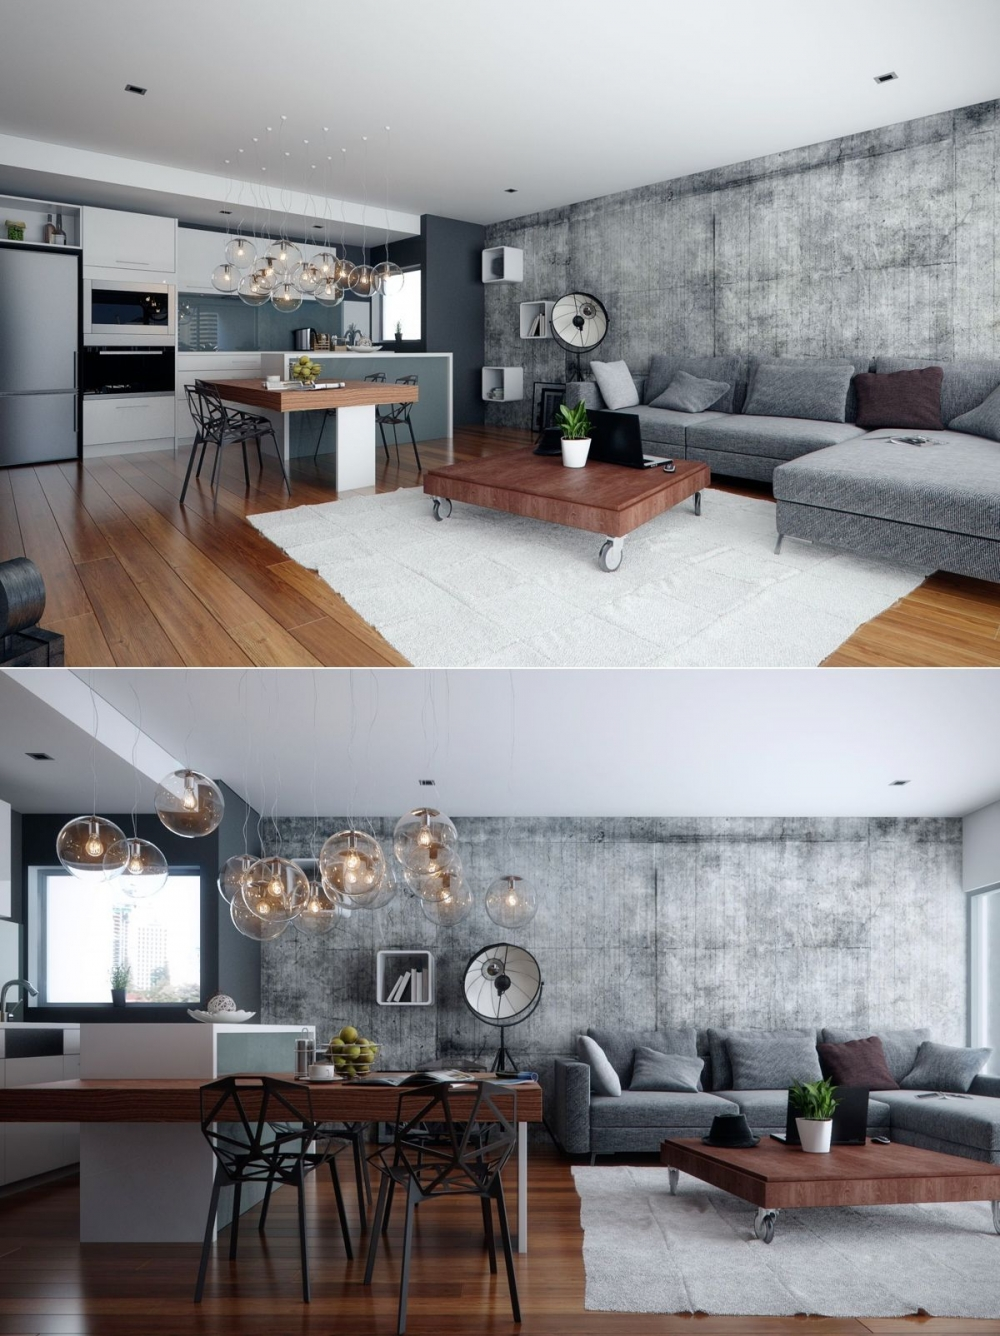 on Studio Apartment Design id=15899